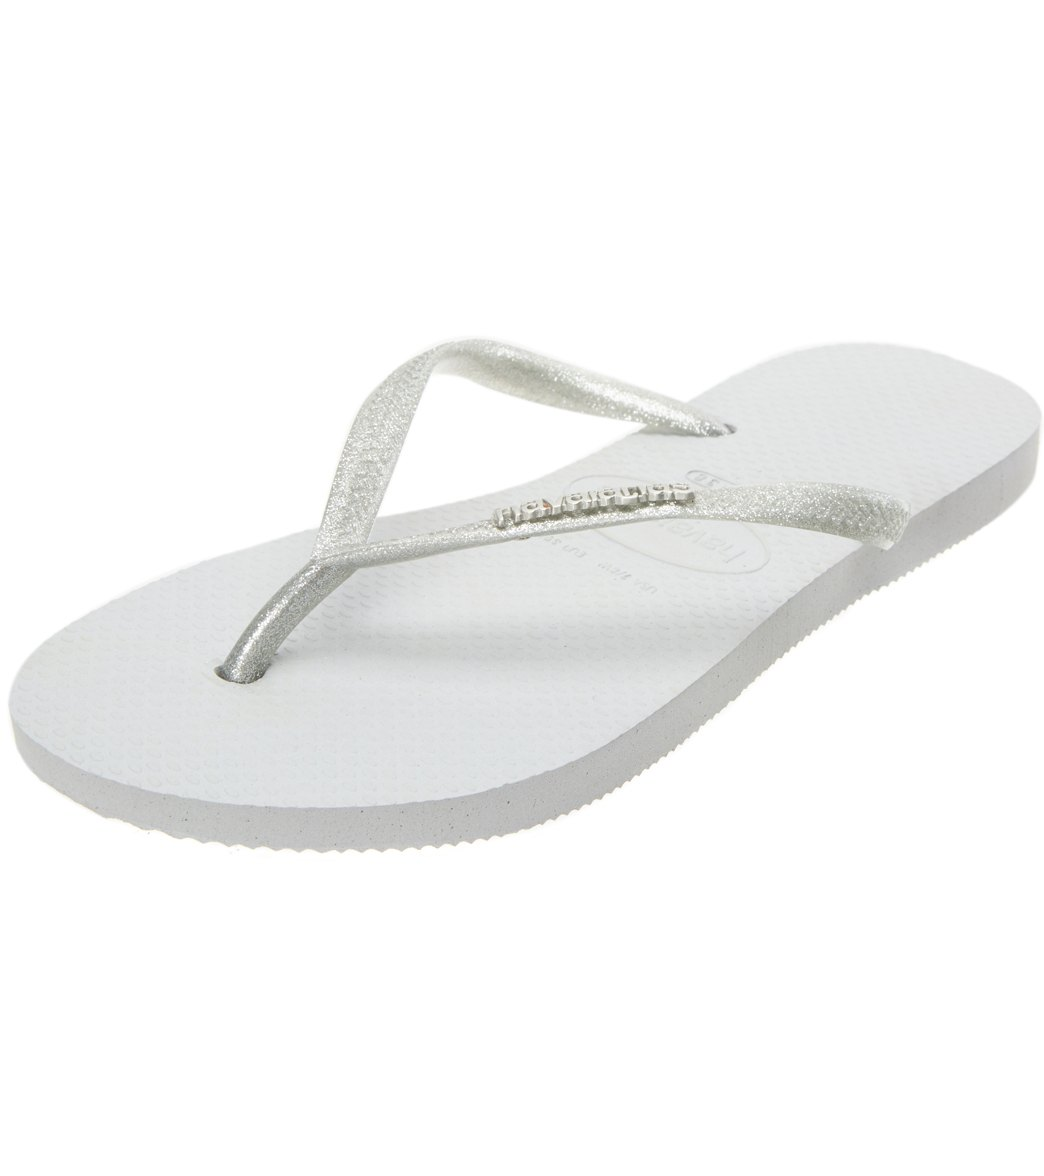 f4d76d965c4060 Havaianas Women s Slim Logo Metallic Flip Flop at SwimOutlet.com